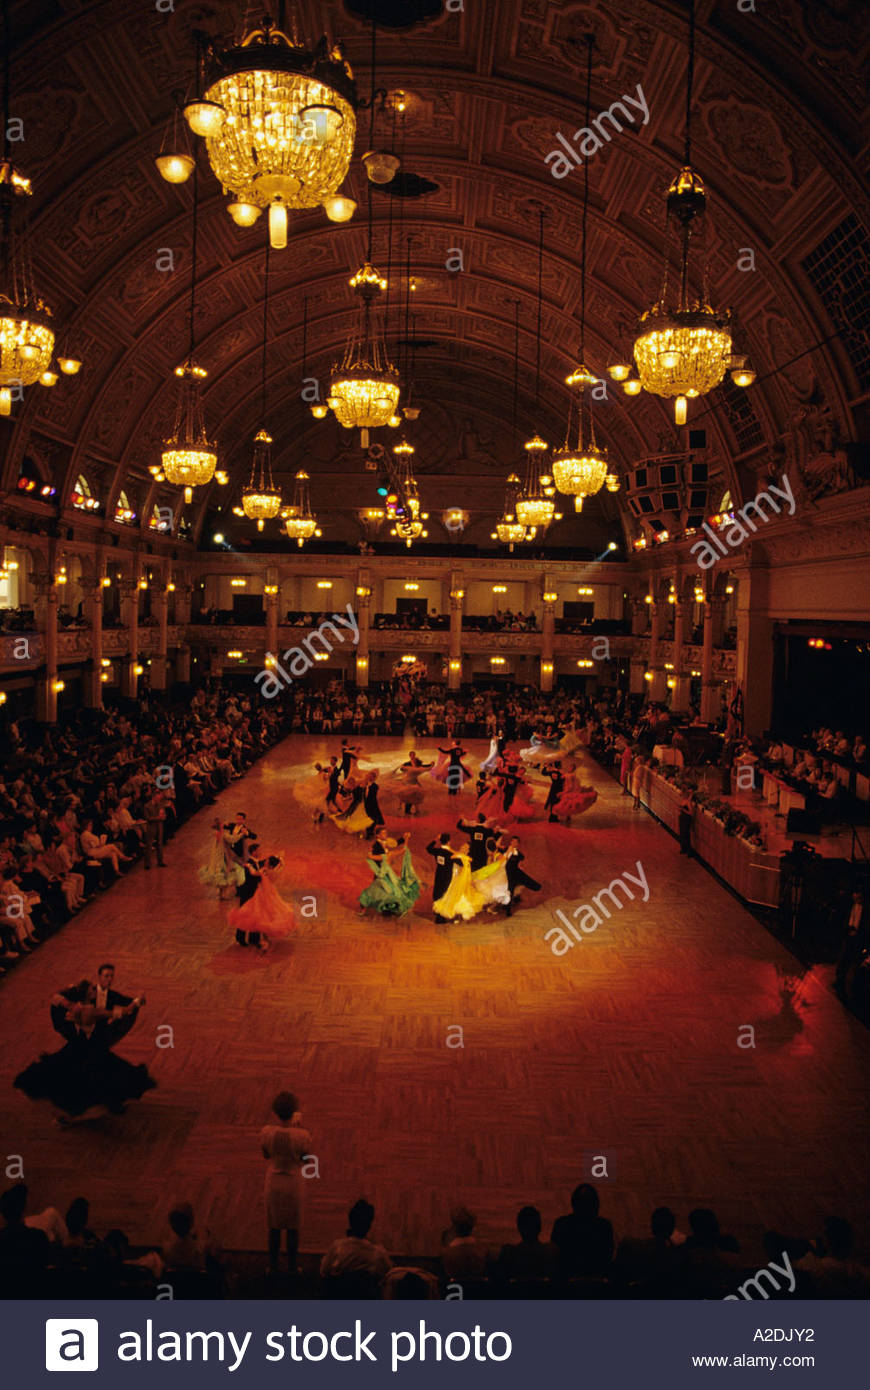 waltz competition ballroom dancing winter gardens blackpool